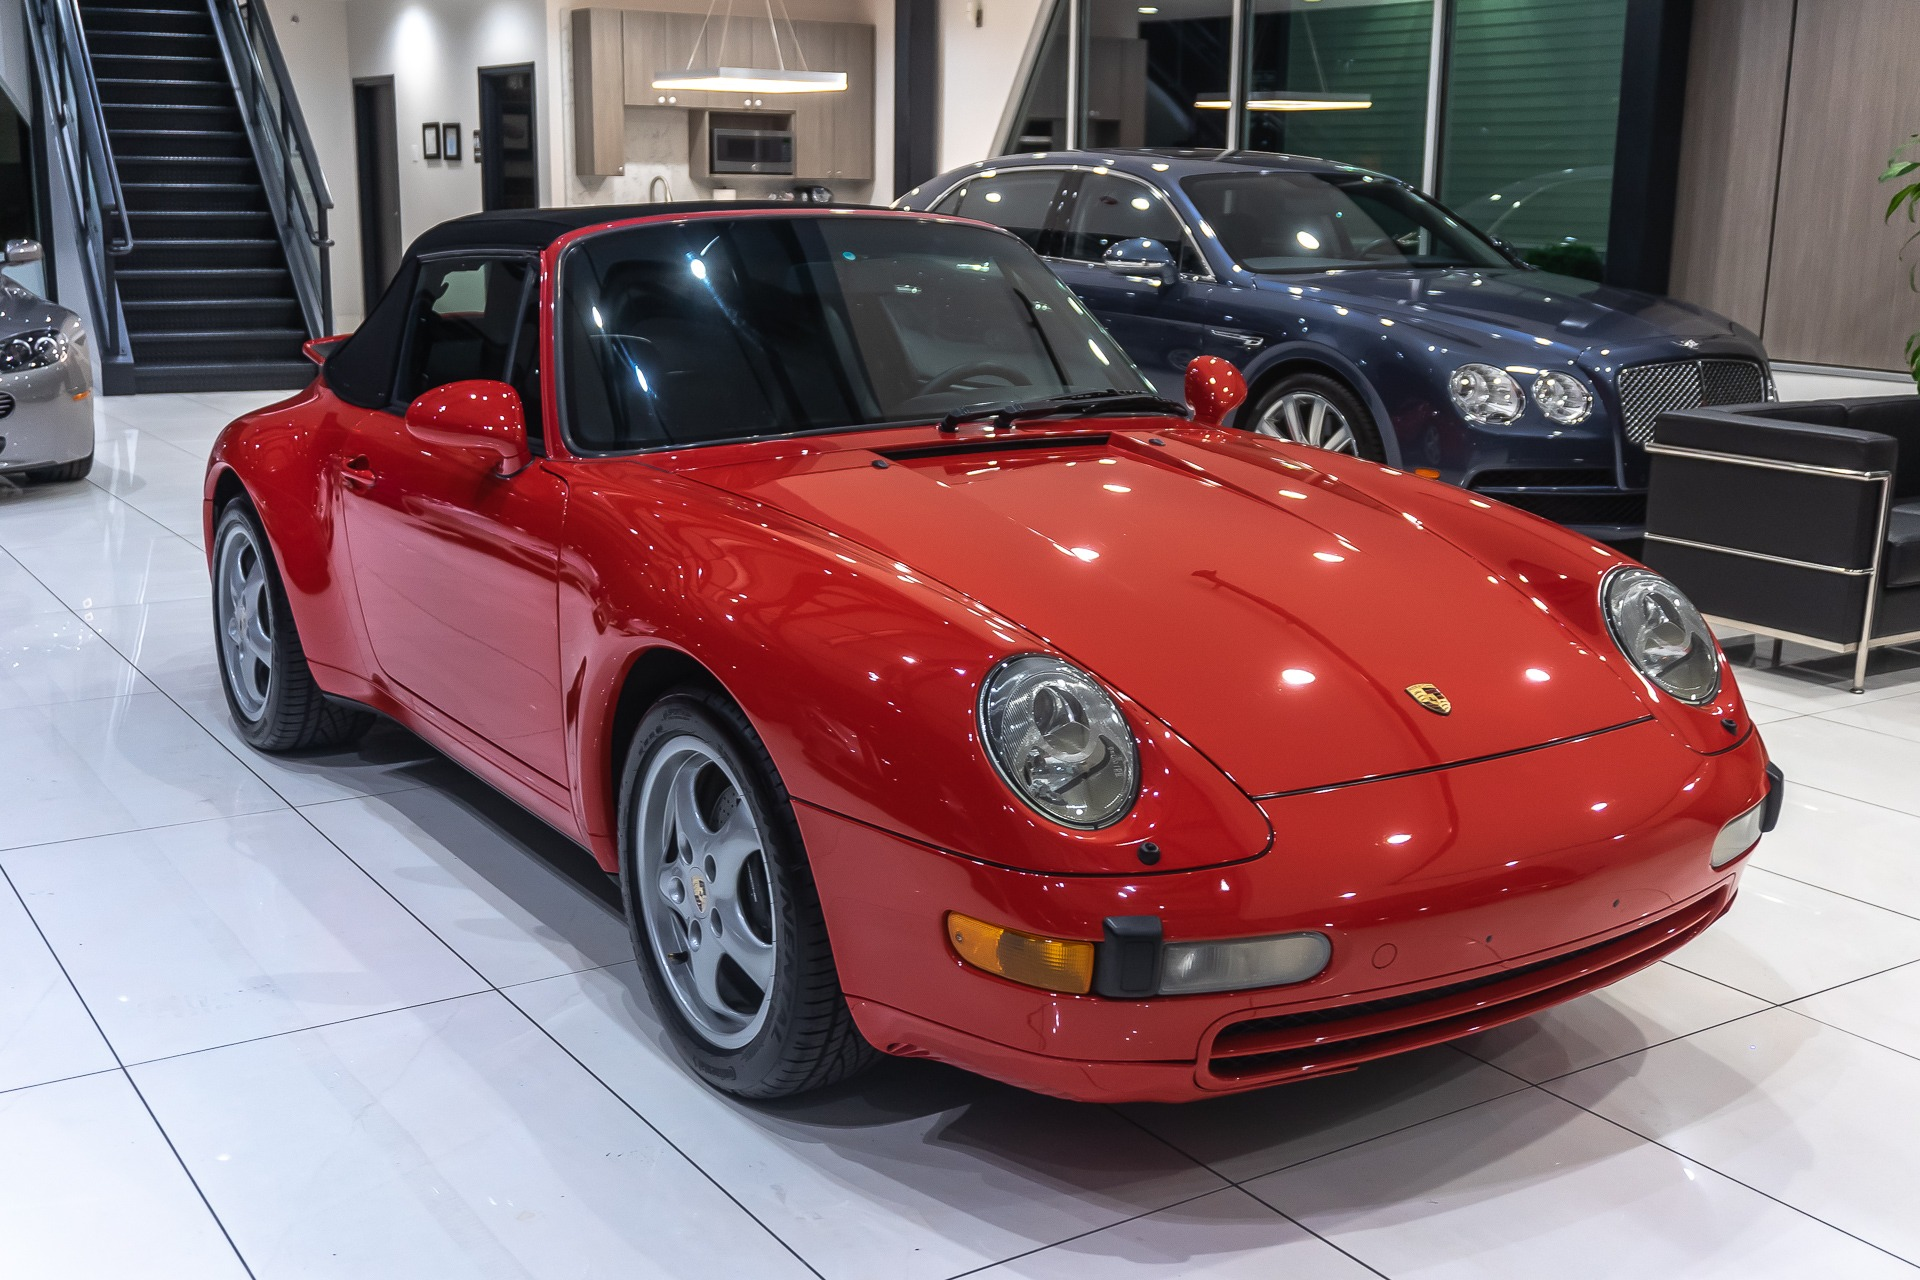 Used-1995-Porsche-911-993-Carrera-C2-Cabriolet-GUARDS-RED-6-SPEED-MANUAL